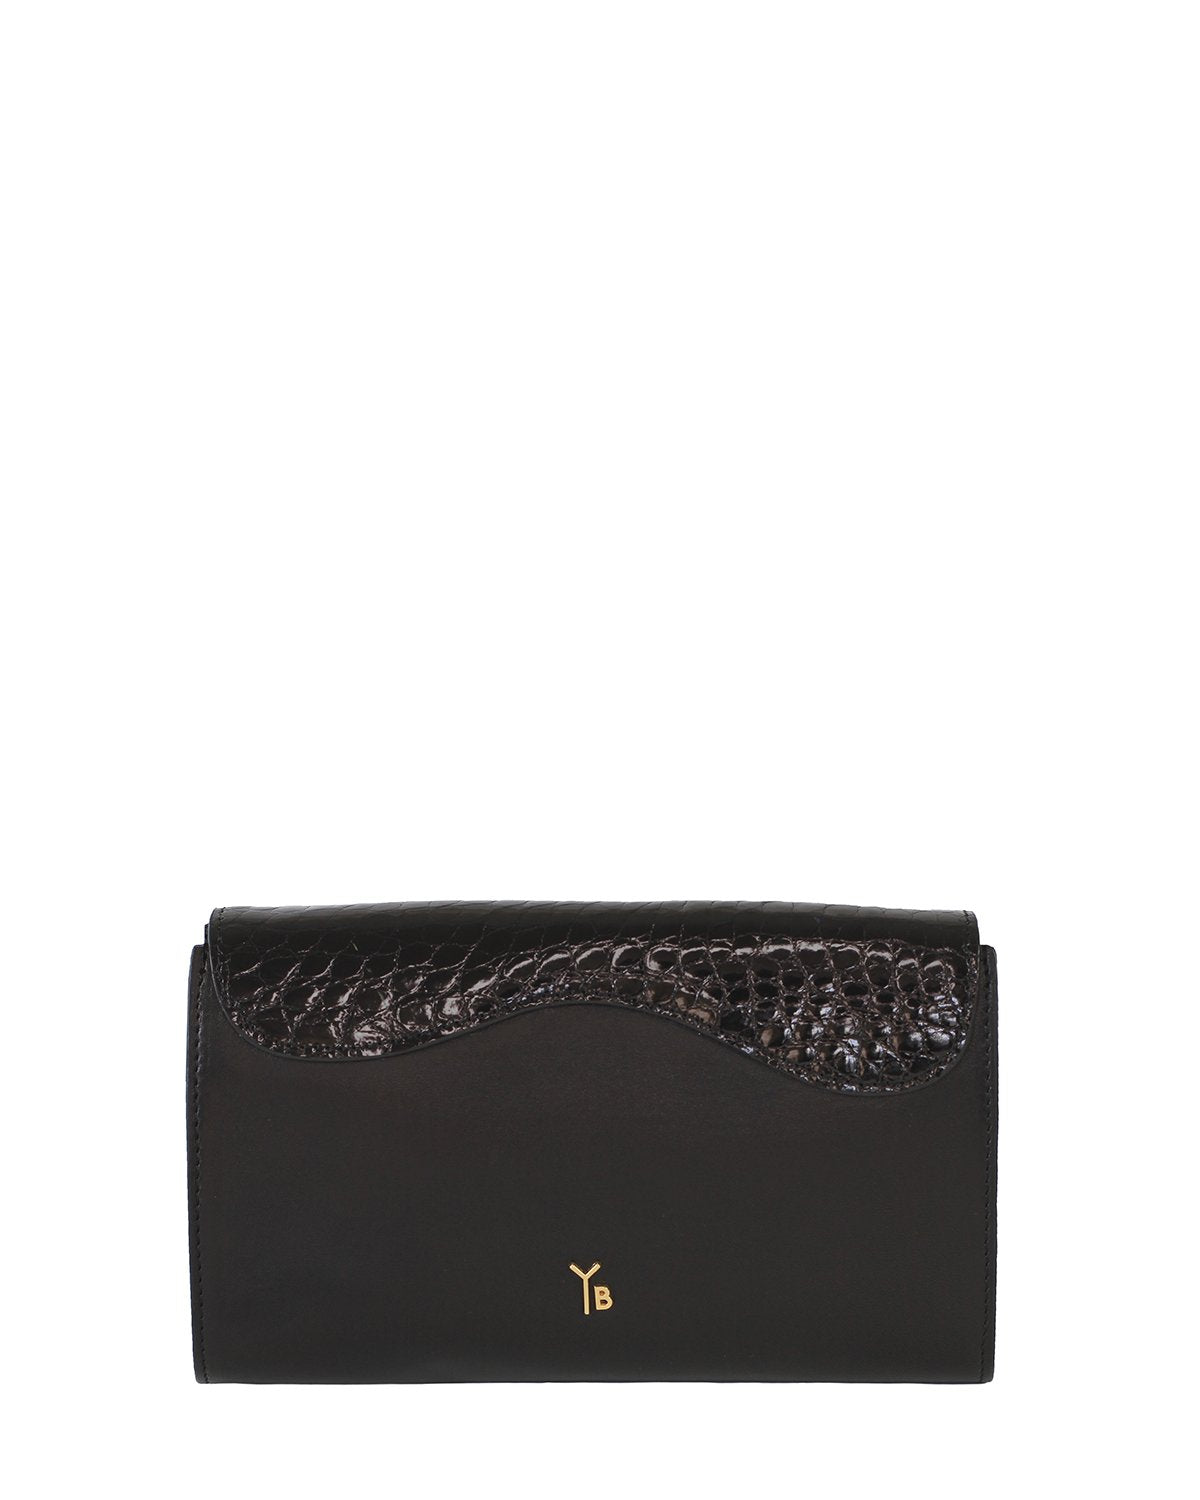 BLACK GRAY ALLIGATOR OSTRICH OSCAR CLUTCH YELLOW GOLD YARA BASHOOR BACK VIEW